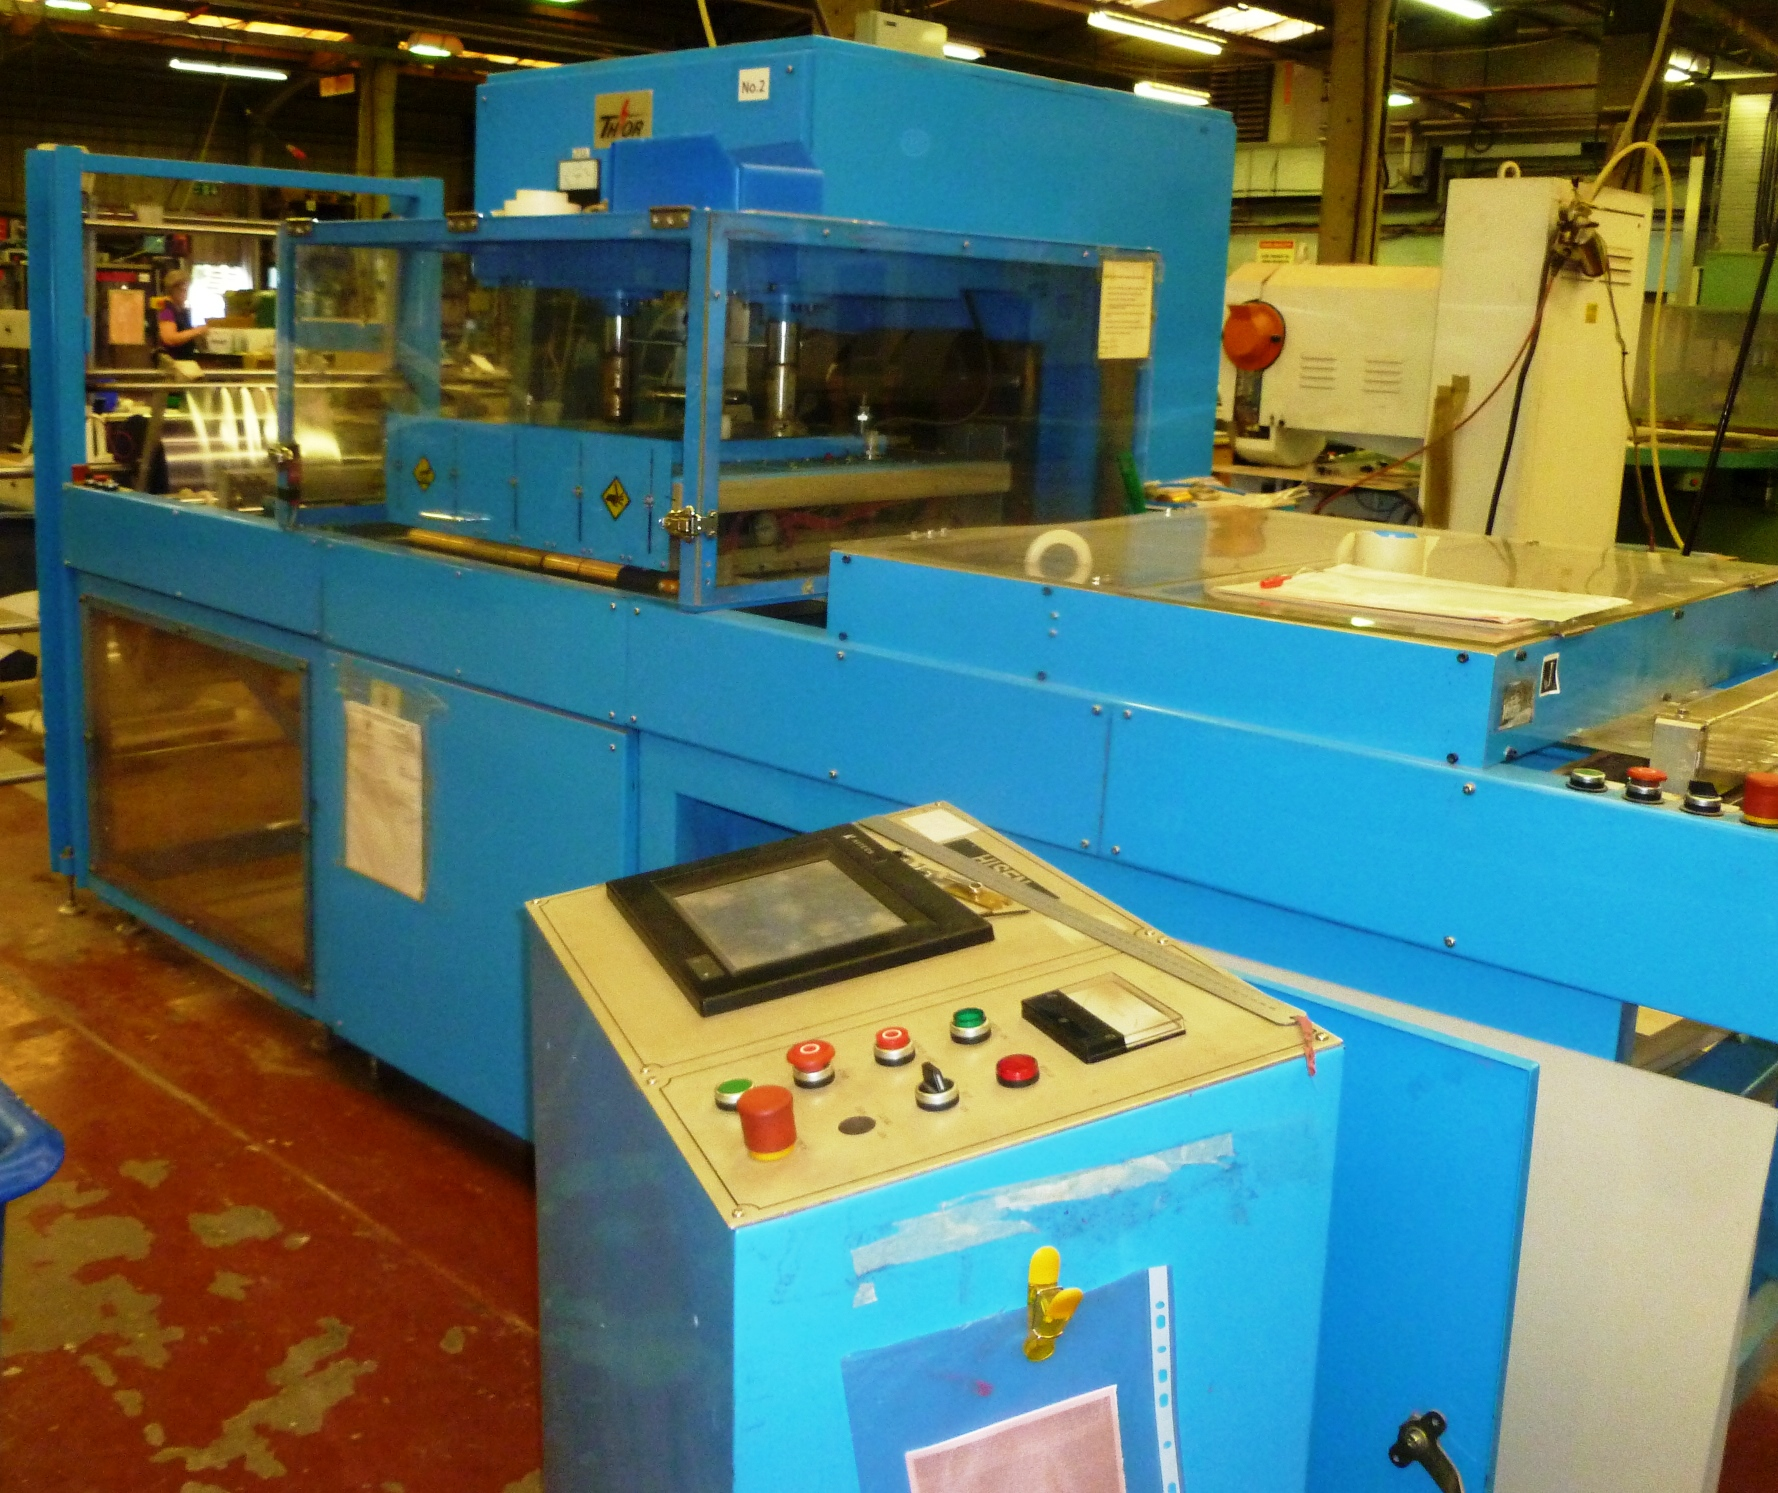 Thor 1024 CE regulated in line welder - Image 1